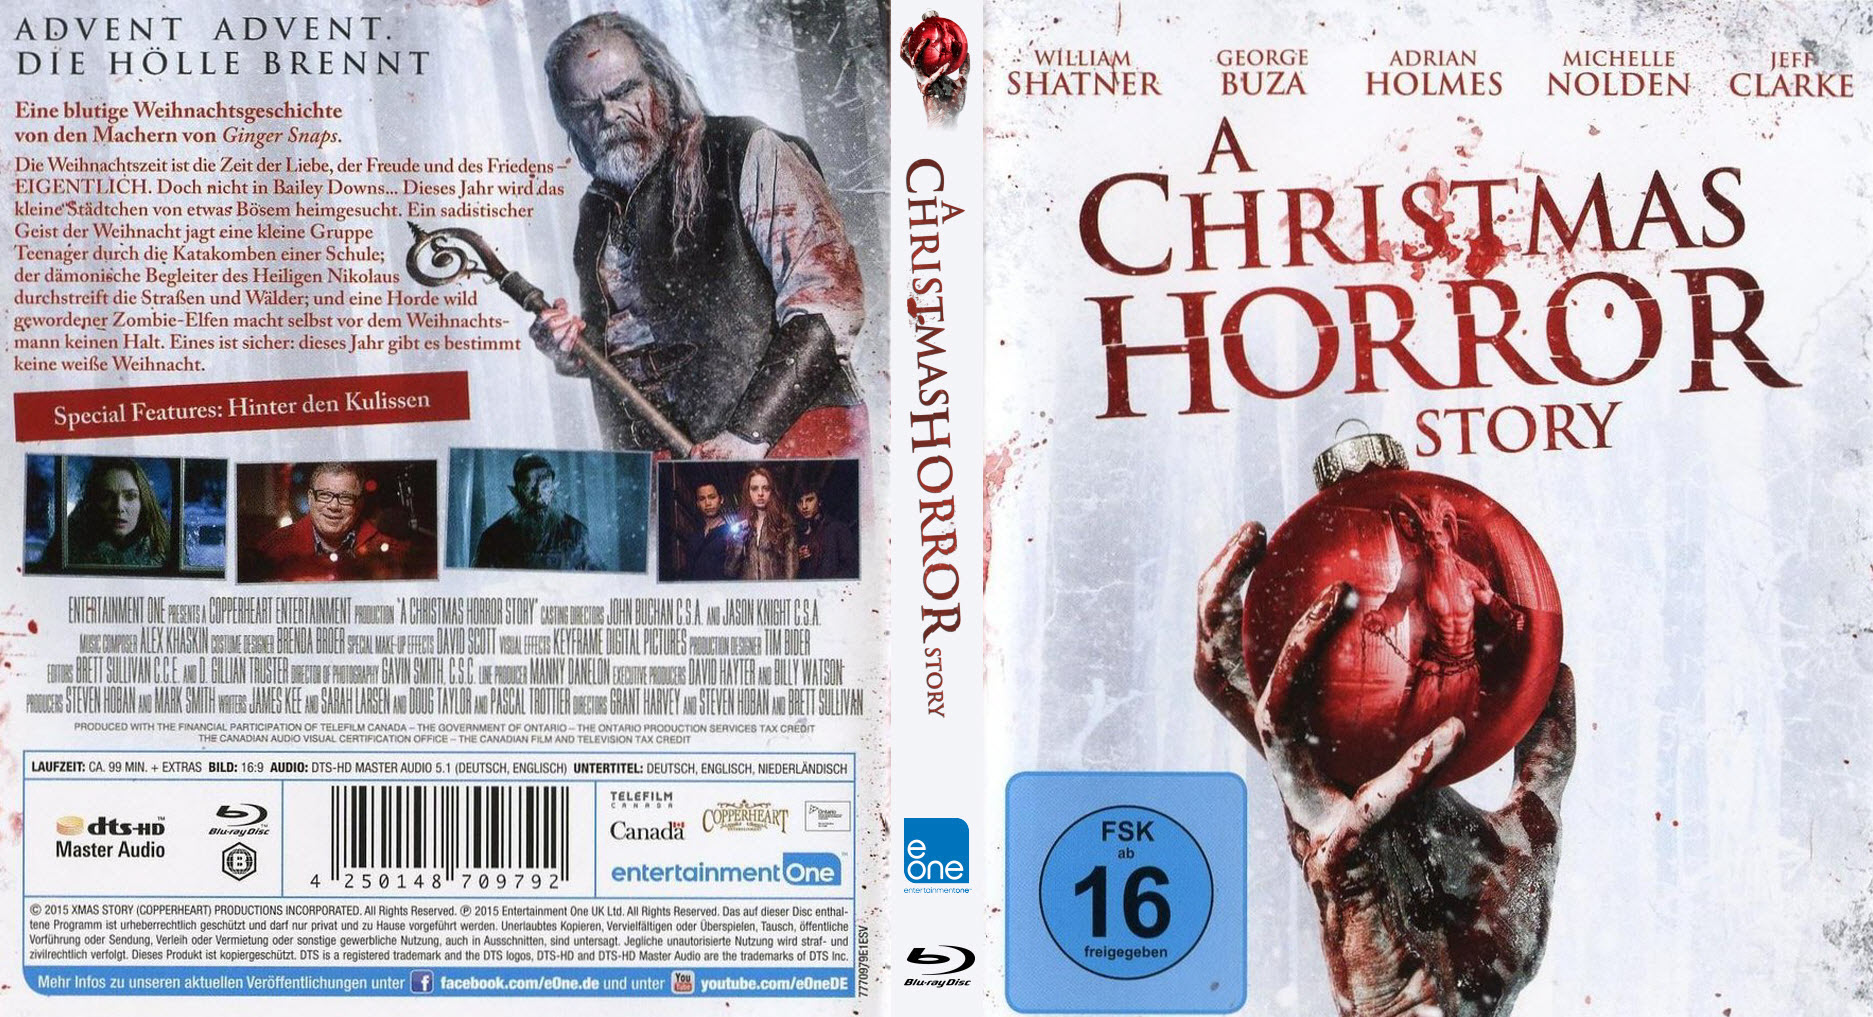 A Christmas Horror Story.A Christmas Horror Story Cover Bd Dvd Covers Cover